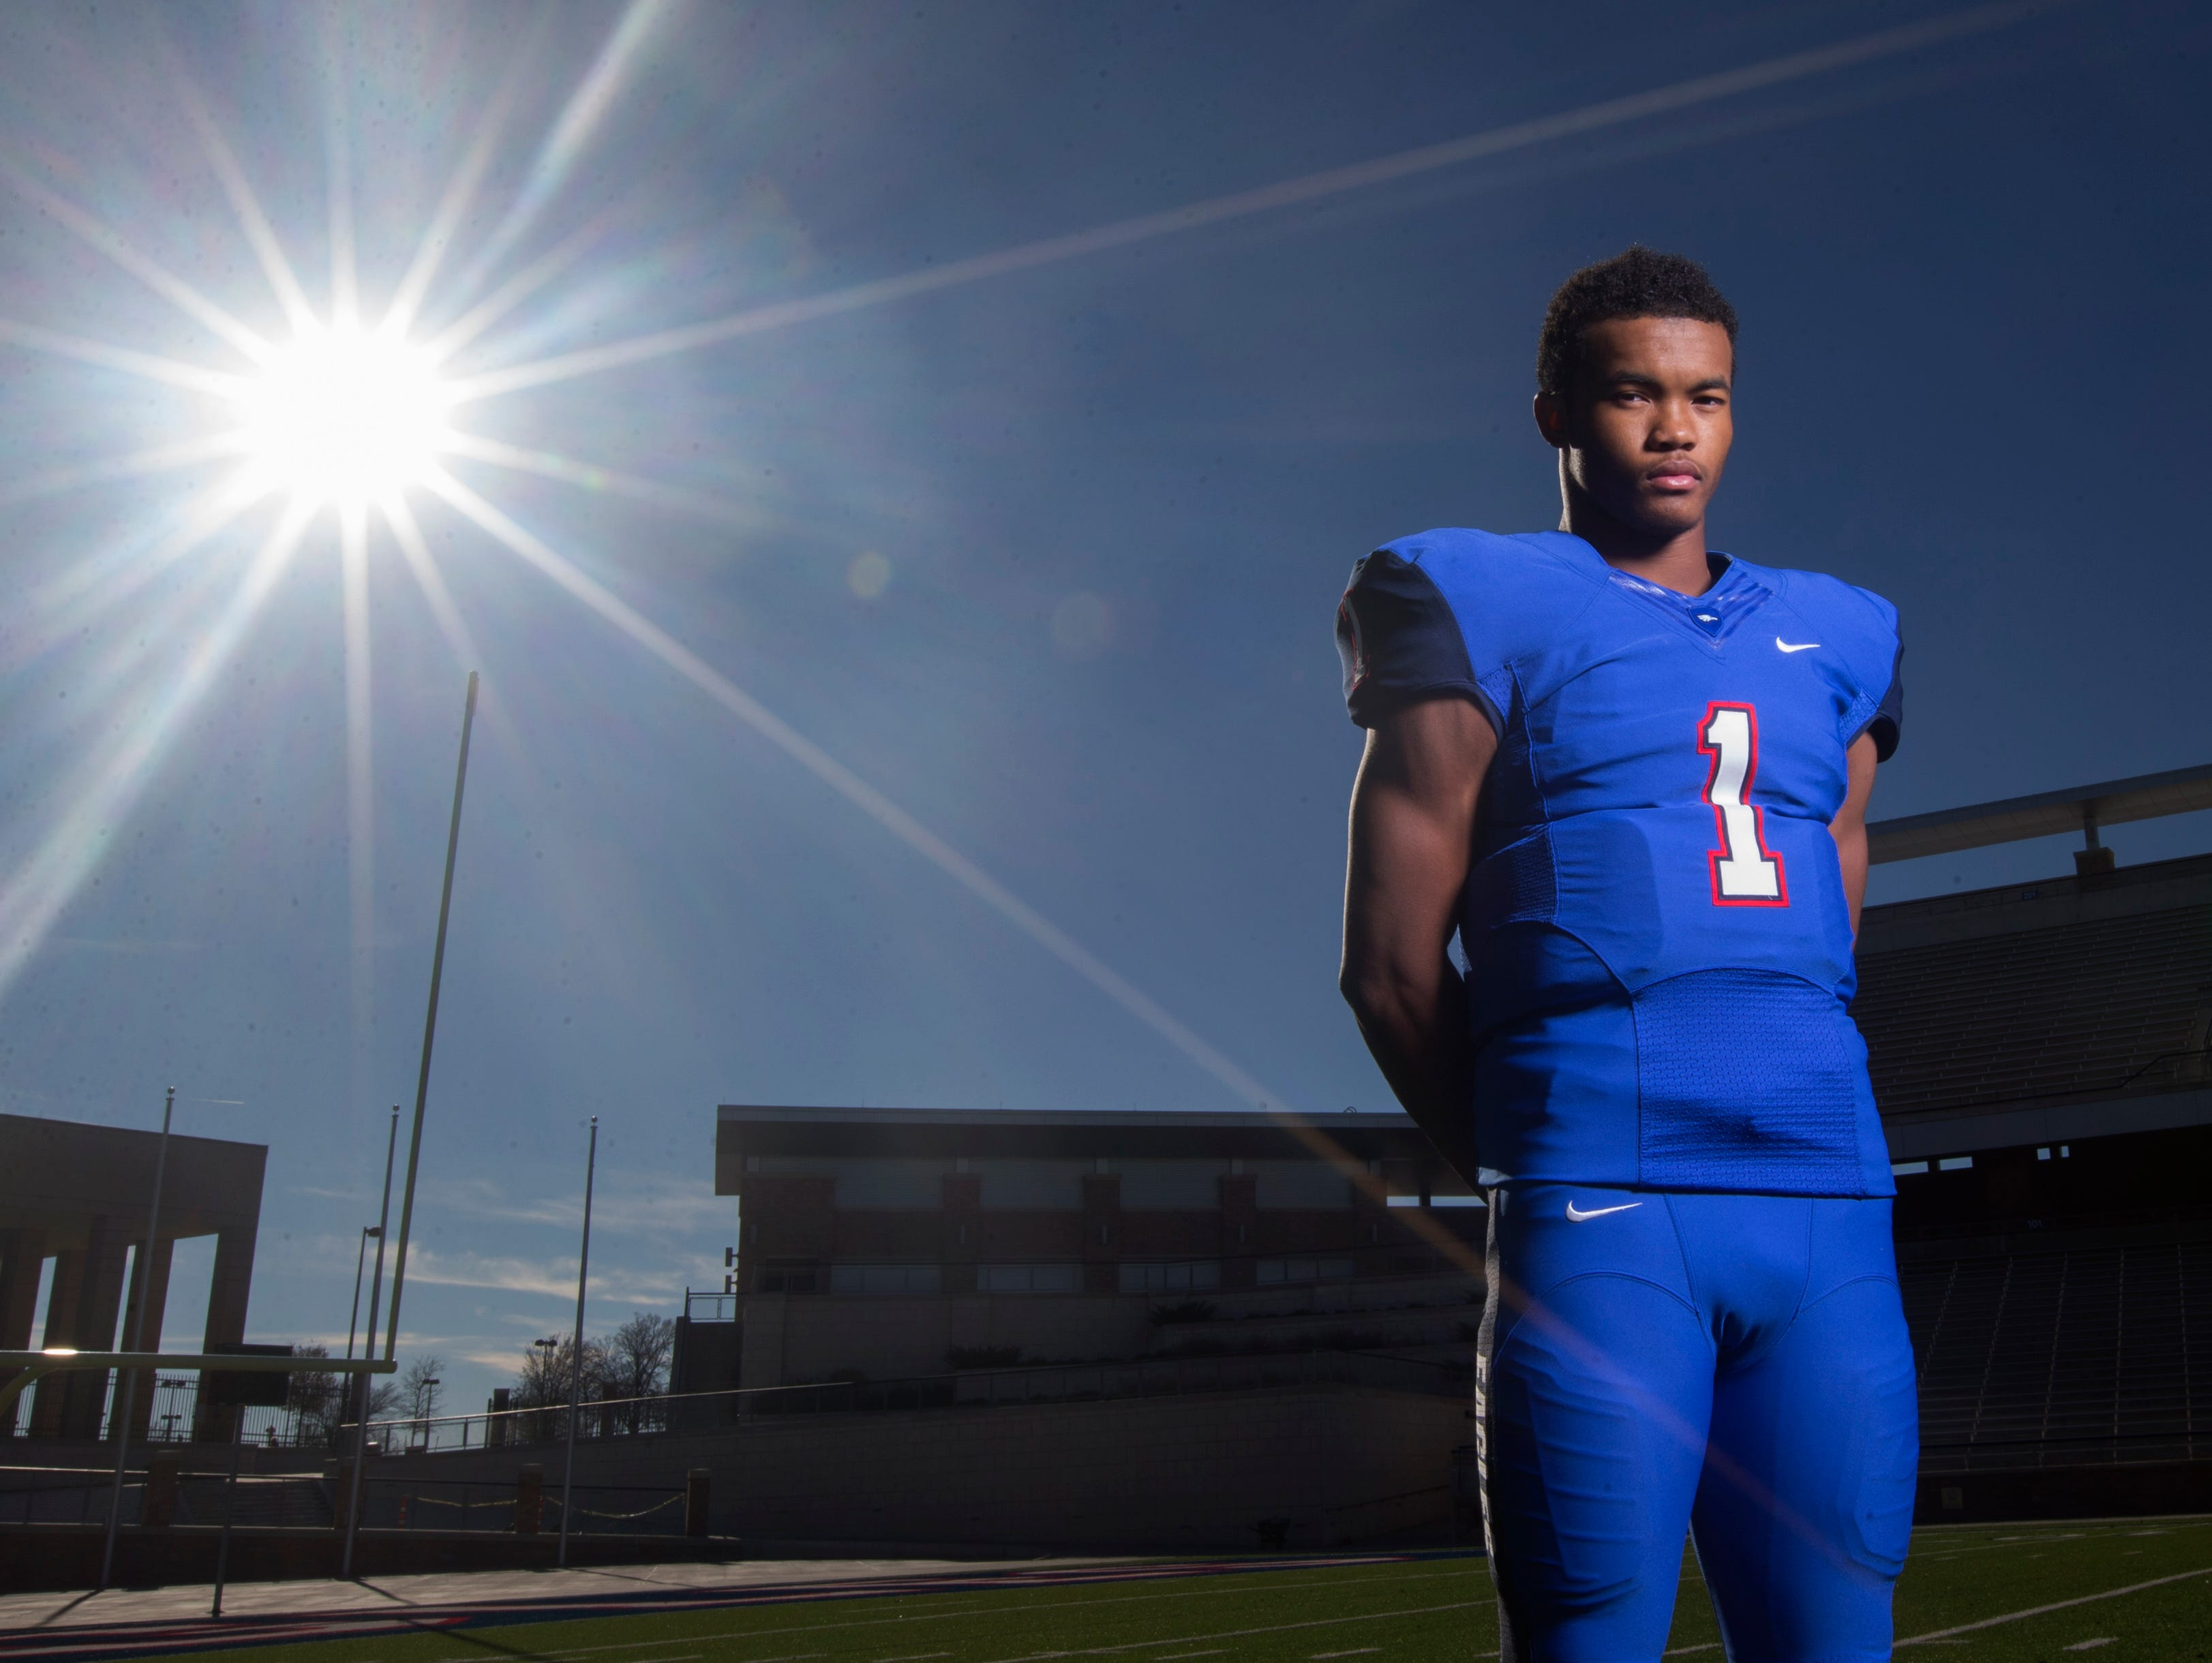 Dec 15, 2014; Allen, TX, USA; Kyler Murray of Allen high school poses for a portrait. He is the USA TODAY high school offensive player of the year. Mandatory Credit: Kevin Jairaj-USA TODAY Sports